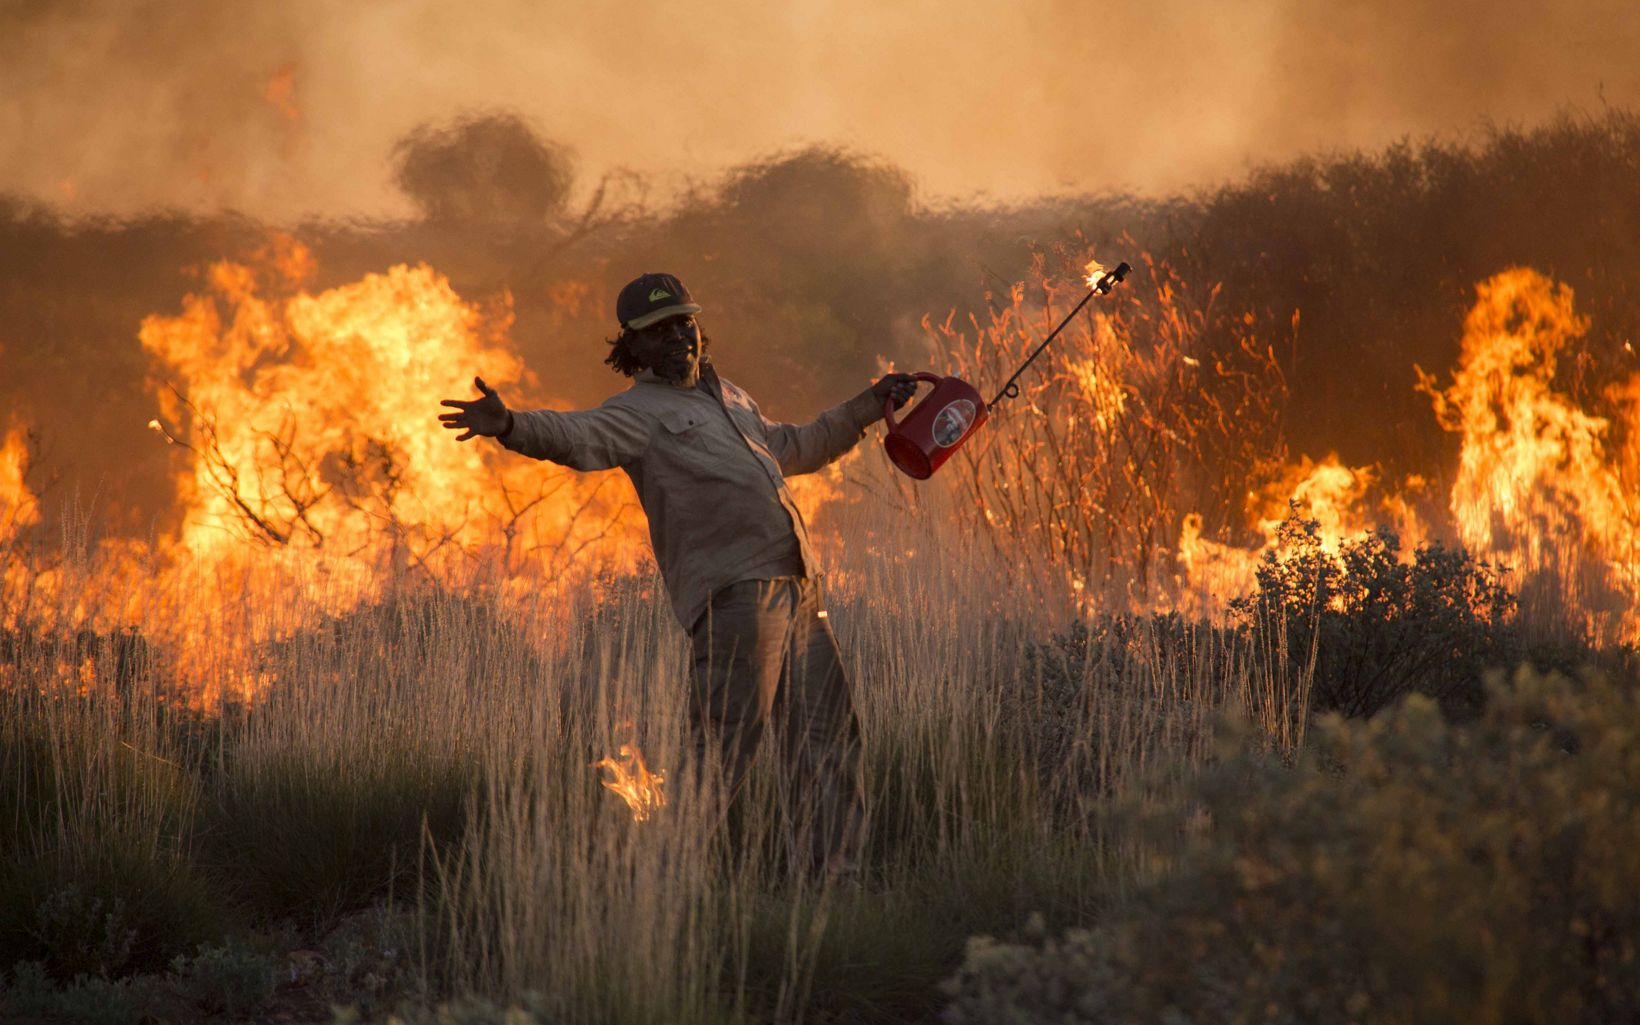 Burning spinifex grass in the Western Desert